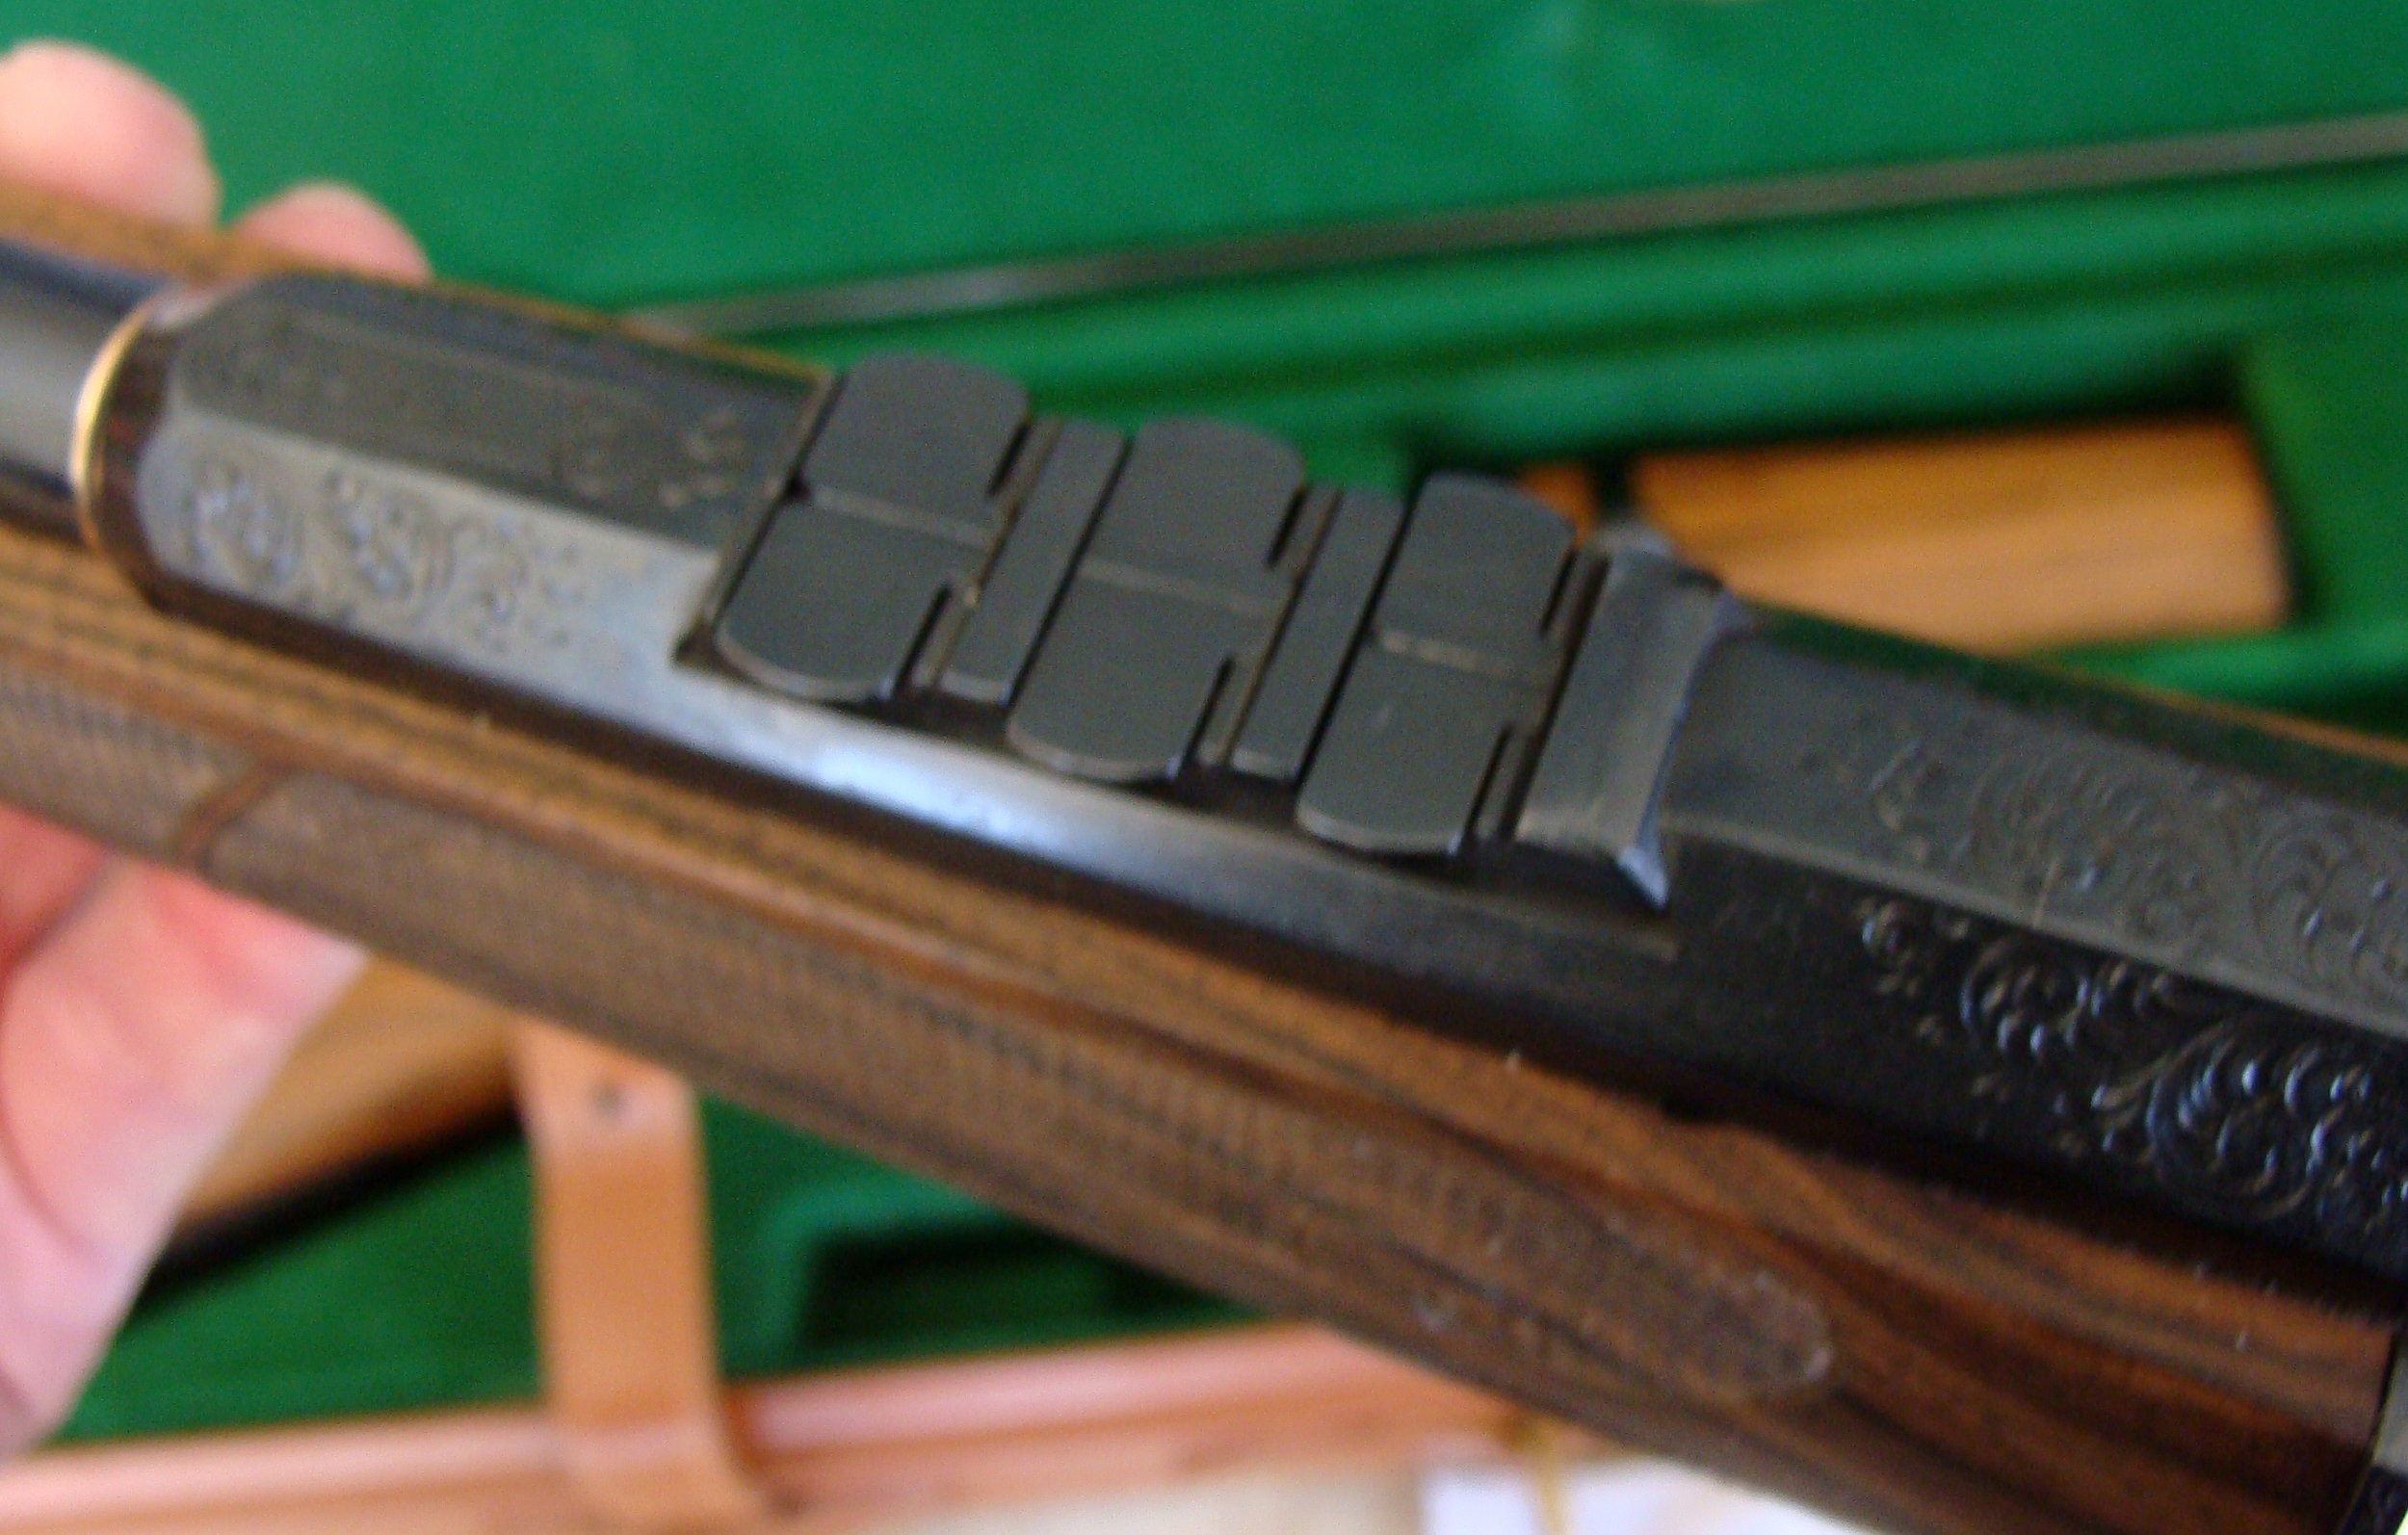 View of Express Sights and Engraved Barrel of  1 of 1 Master Gunsmith Made 22 Takedown